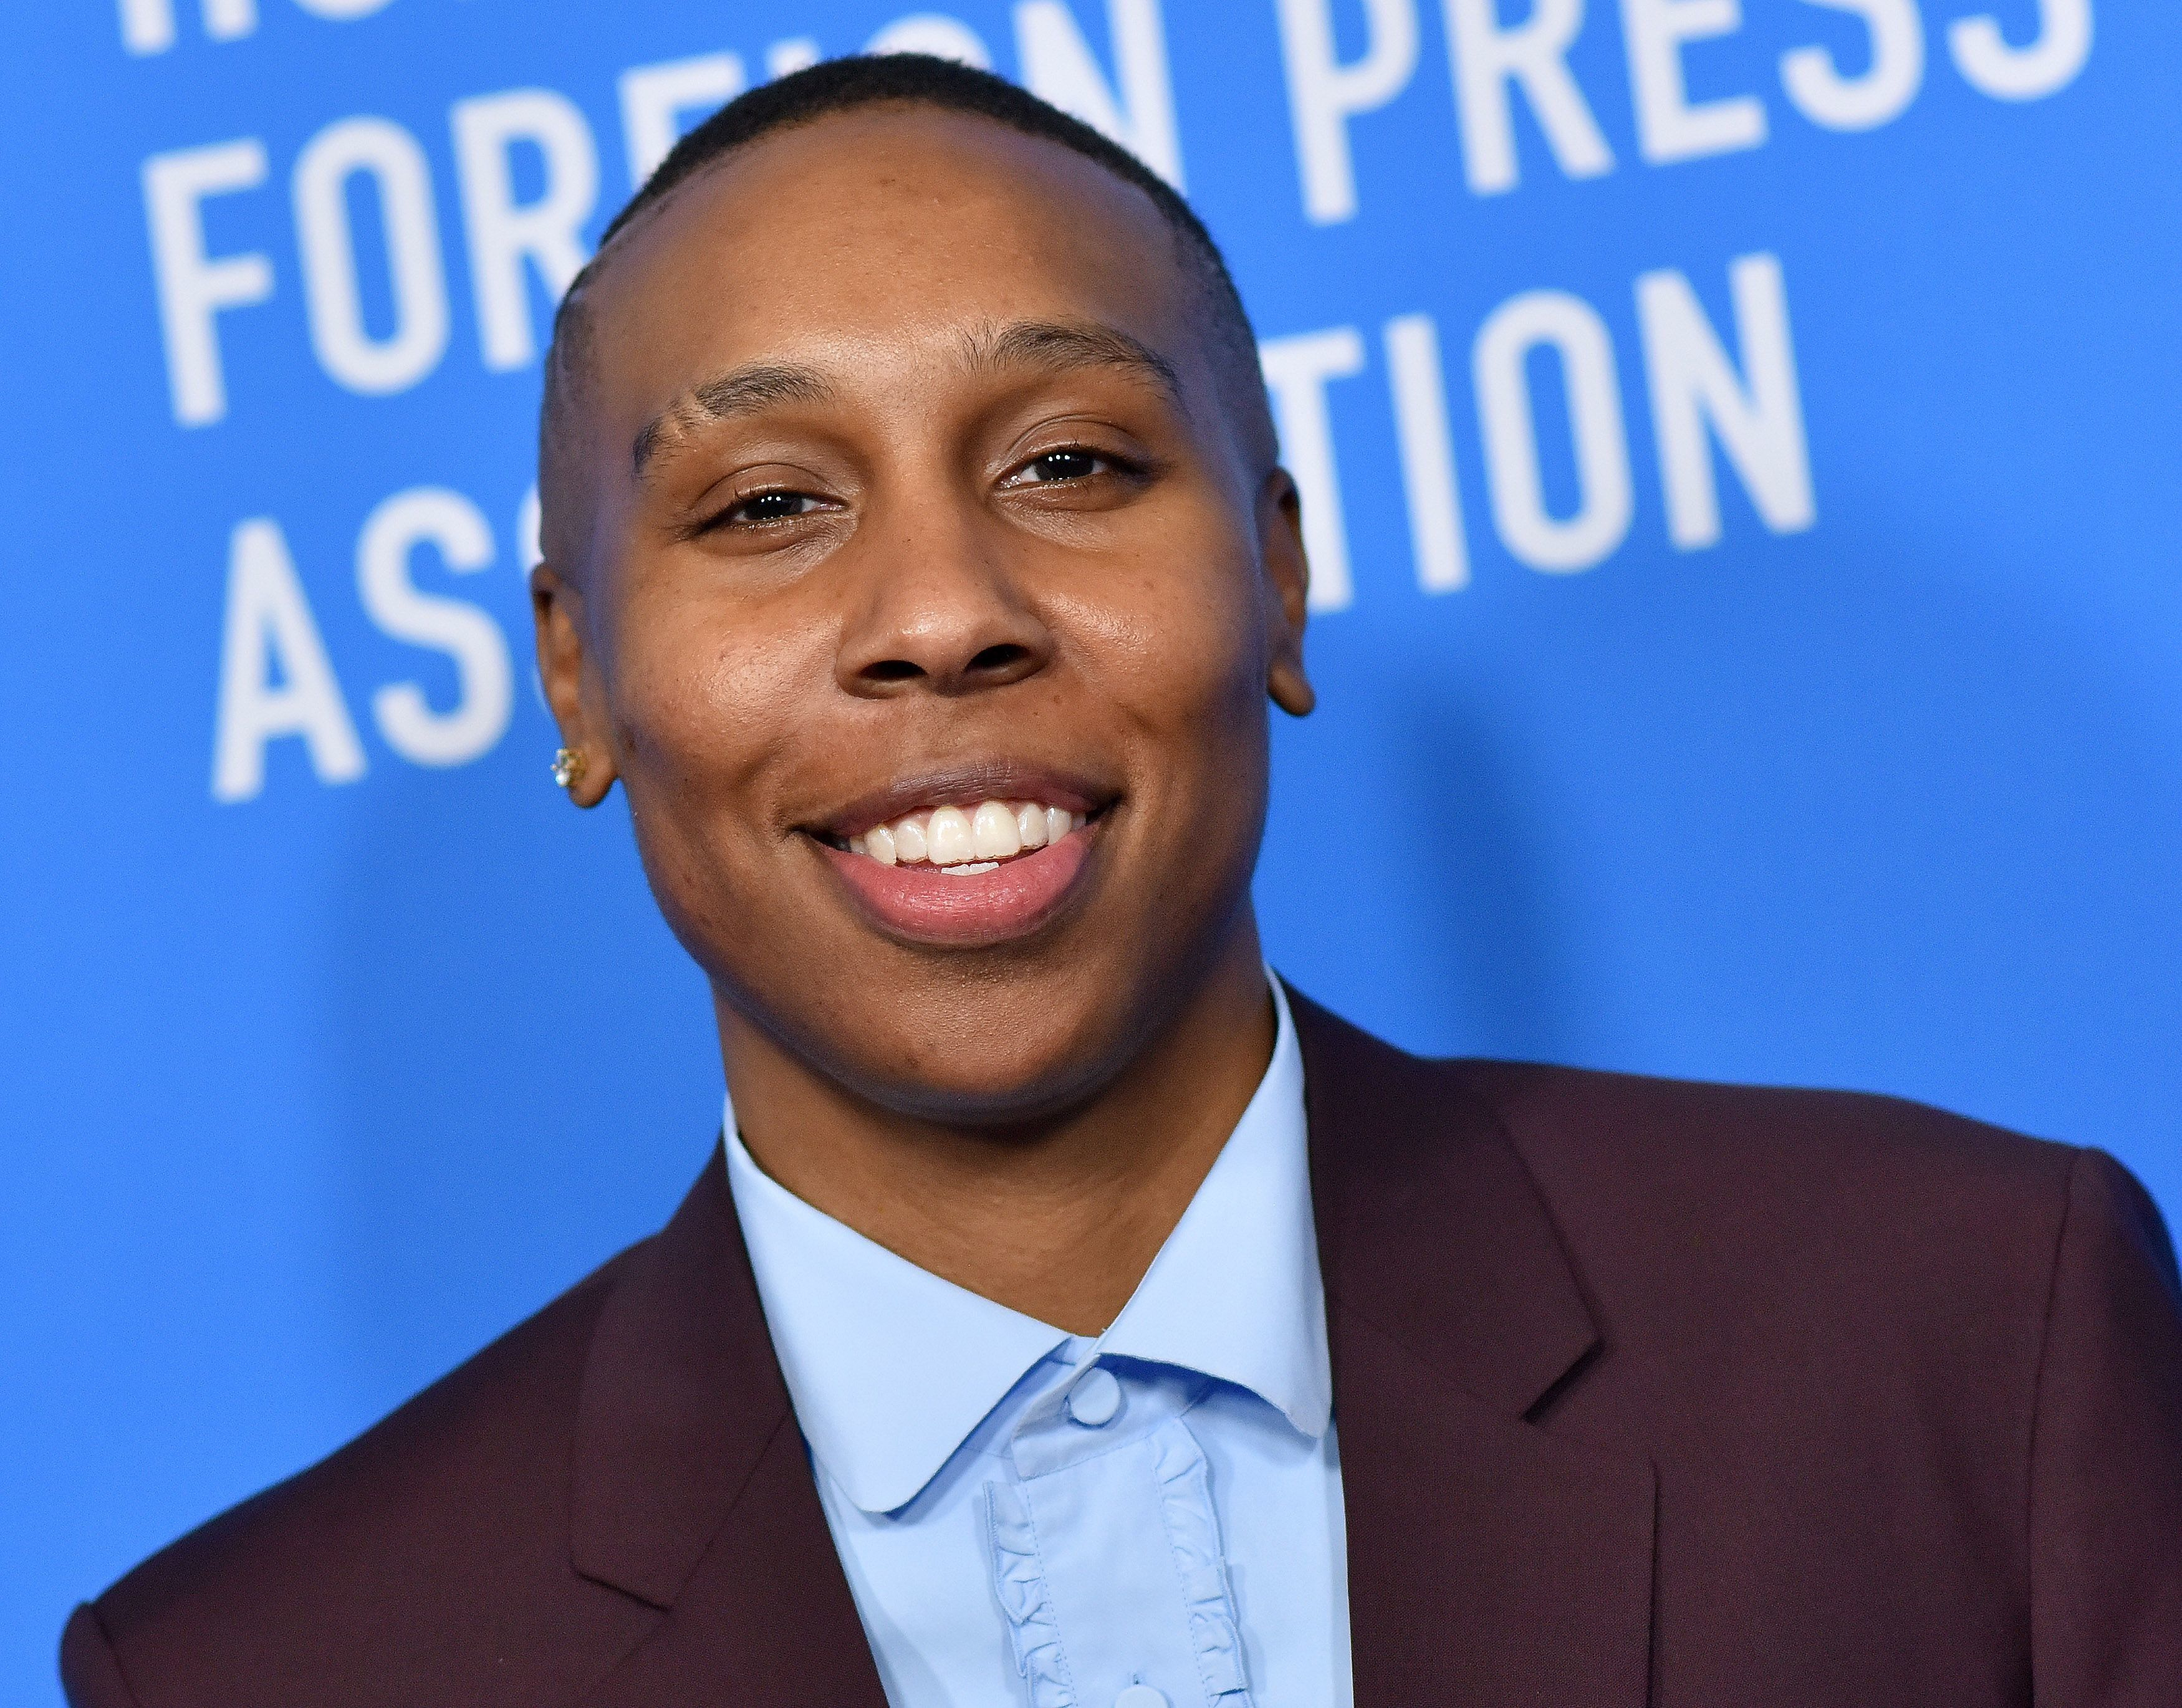 US actress/screenwriter Lena Waithe attends the Hollywood Foreign Press Associations Annual Grants Banquet in Beverly Hills, California, on August 9, 2018. (Photo by LISA O'CONNOR / AFP)        (Photo credit should read LISA O'CONNOR/AFP/Getty Images)